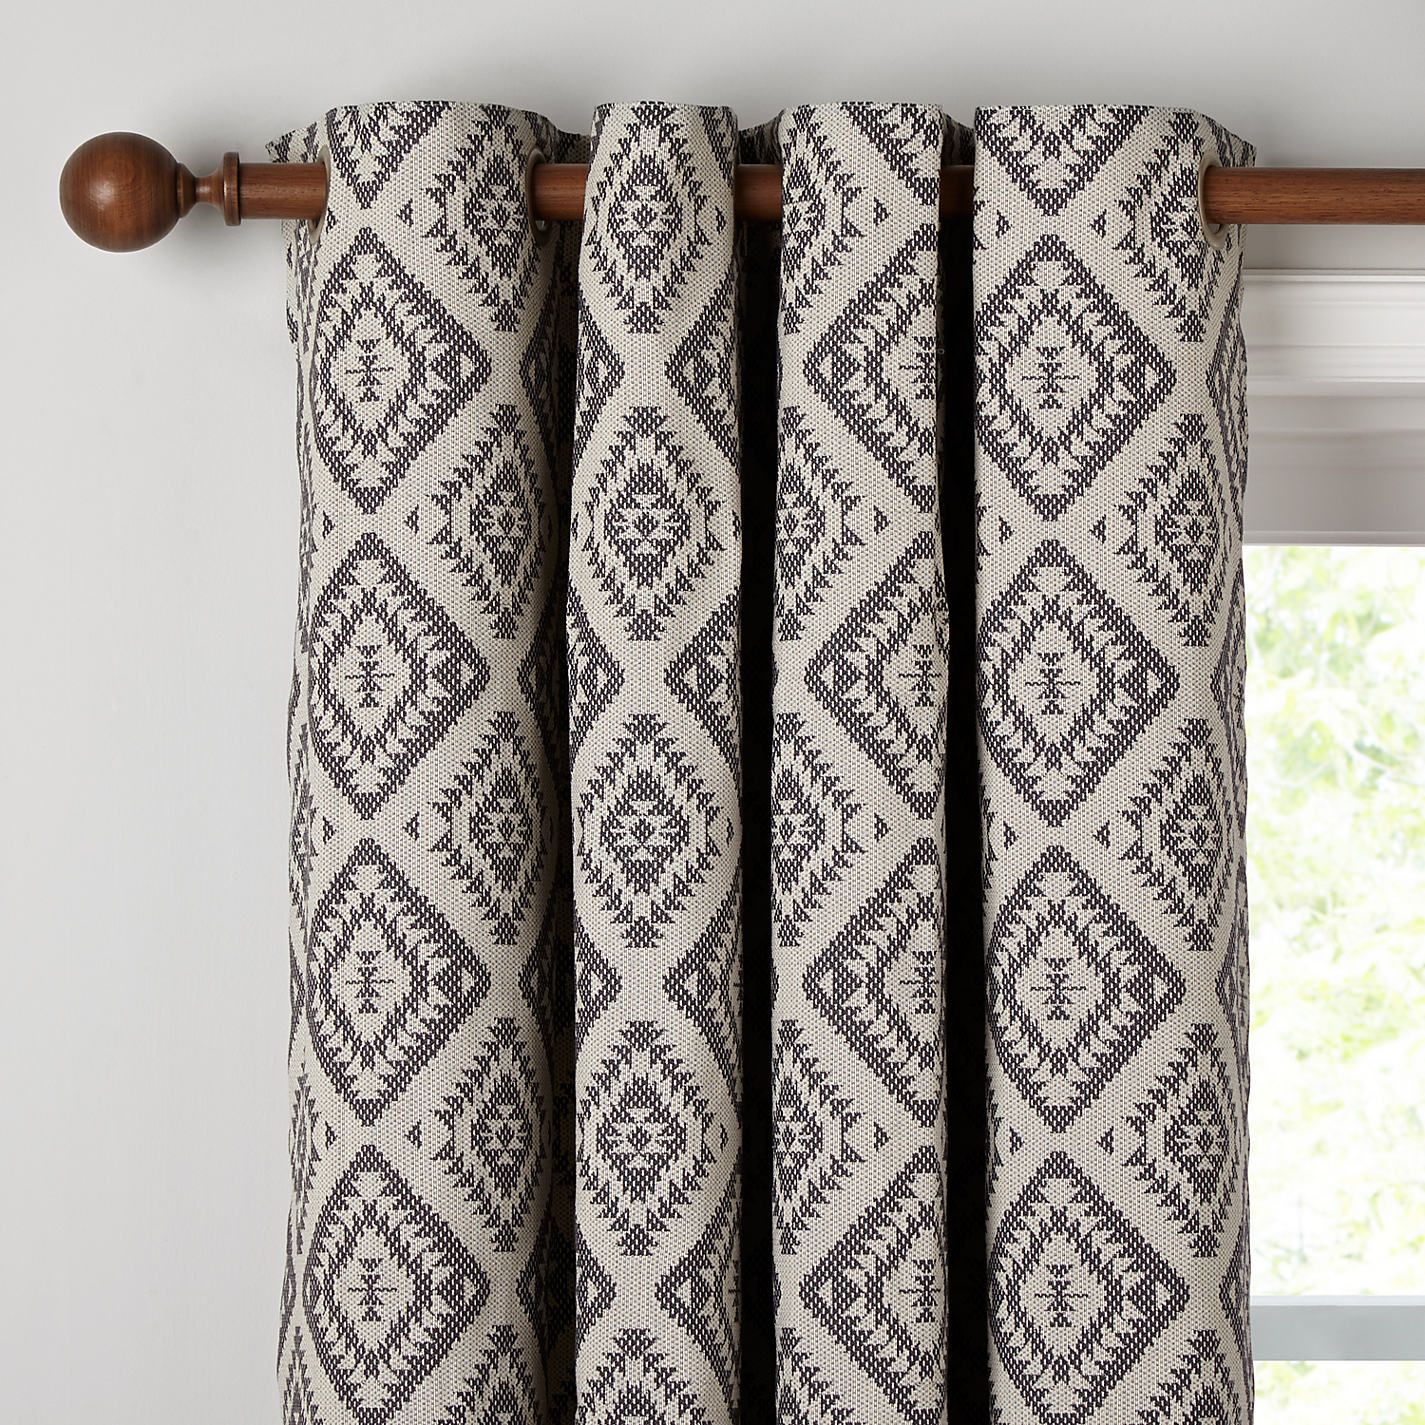 Buy John Lewis Native Weave Lined Eyelet Curtains John Lewis - John lewis curtains grey